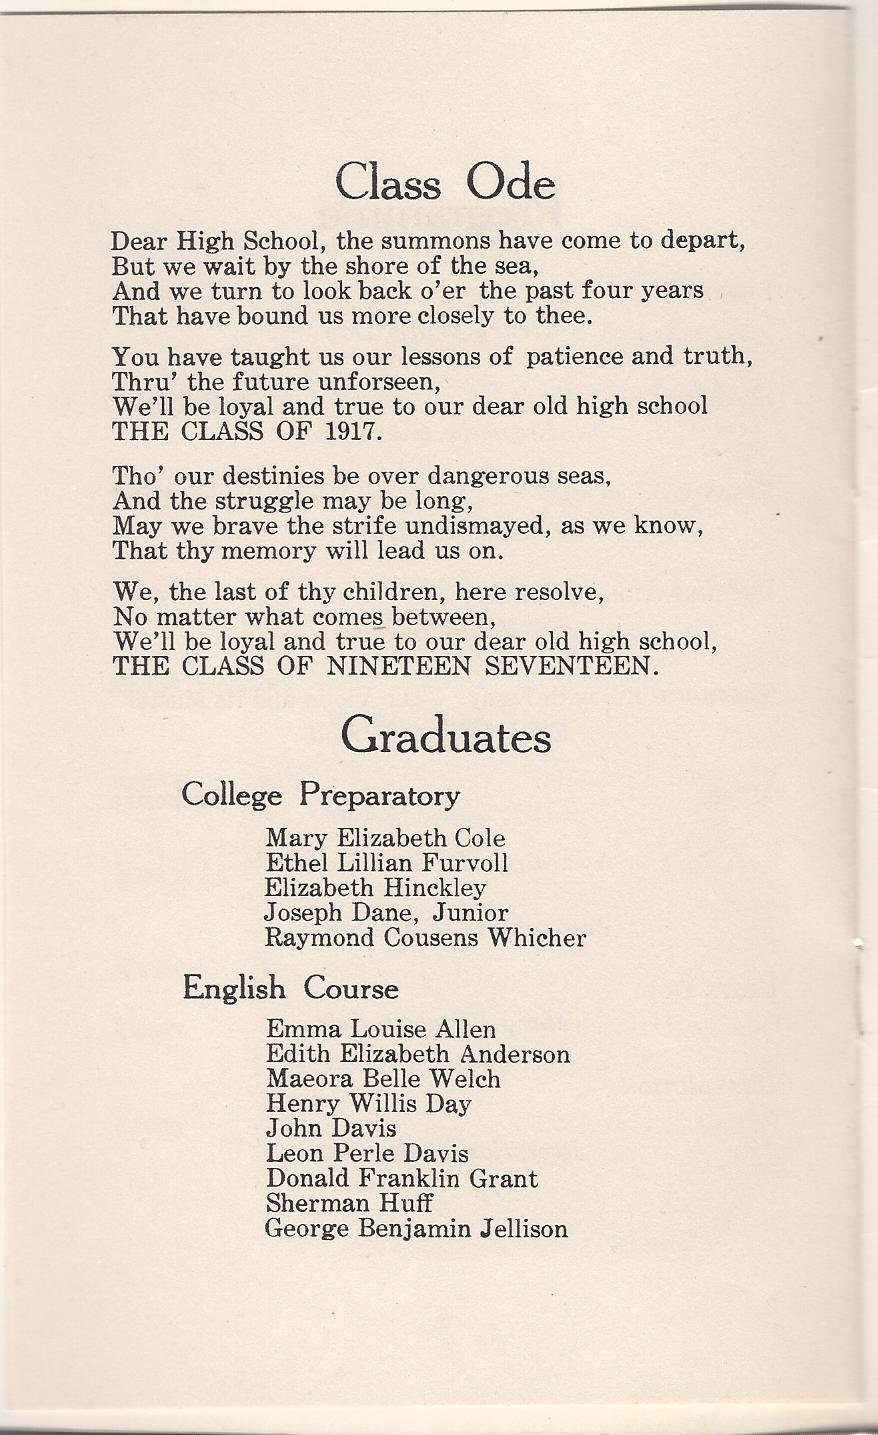 heirlooms reunited graduation program of kennebunk high 1917 graduation program of kennebunk high school at kennebunk maine